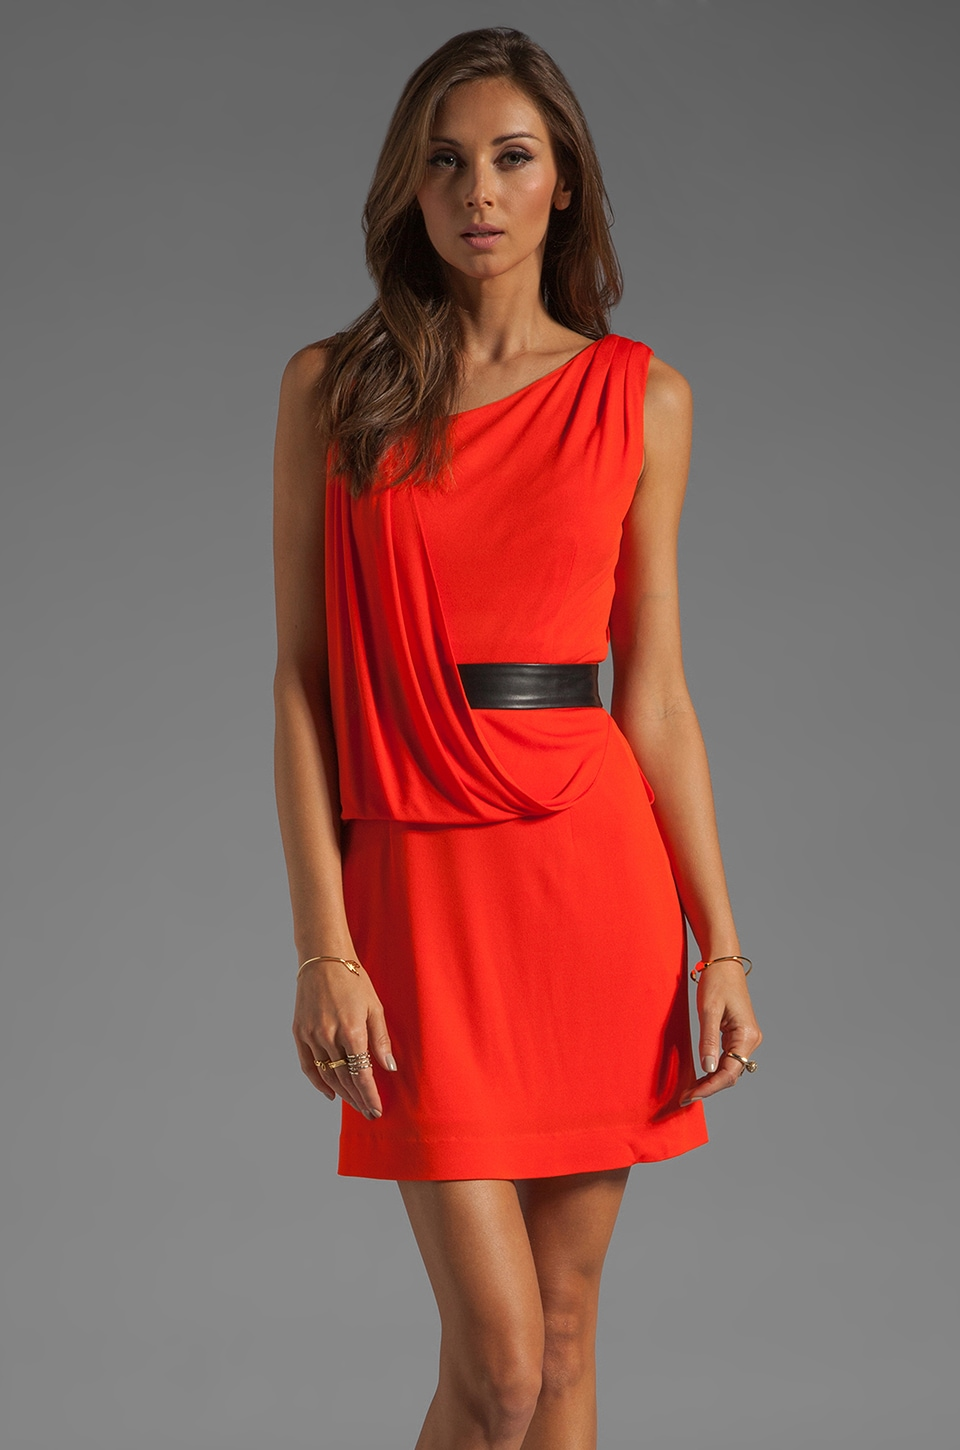 MILLY Italian Matte Jersey Iris Dress in Persimmon